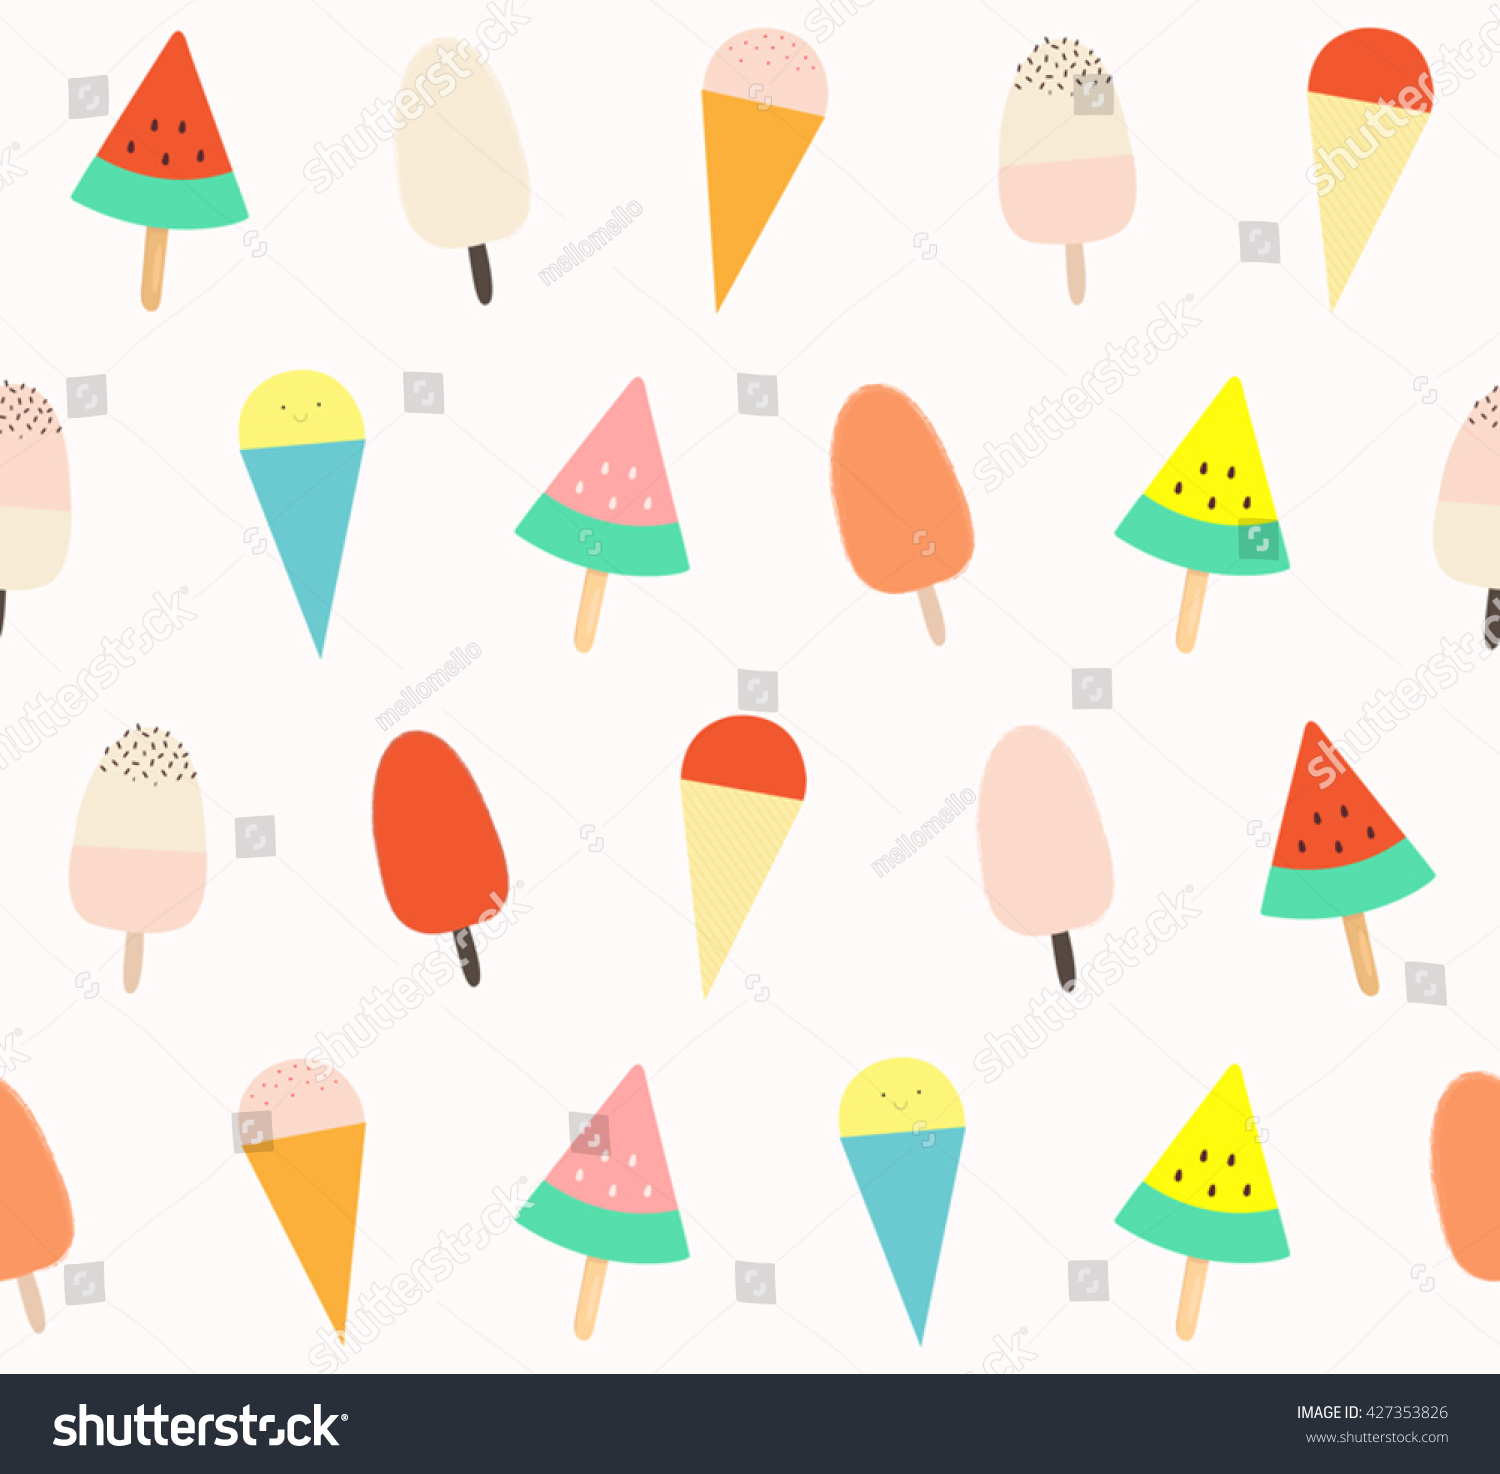 Sweet Ice Cream Flat Colorful Seamless Pattern Vector: Cute Different Colorful Ice Cream Design Stock Vector